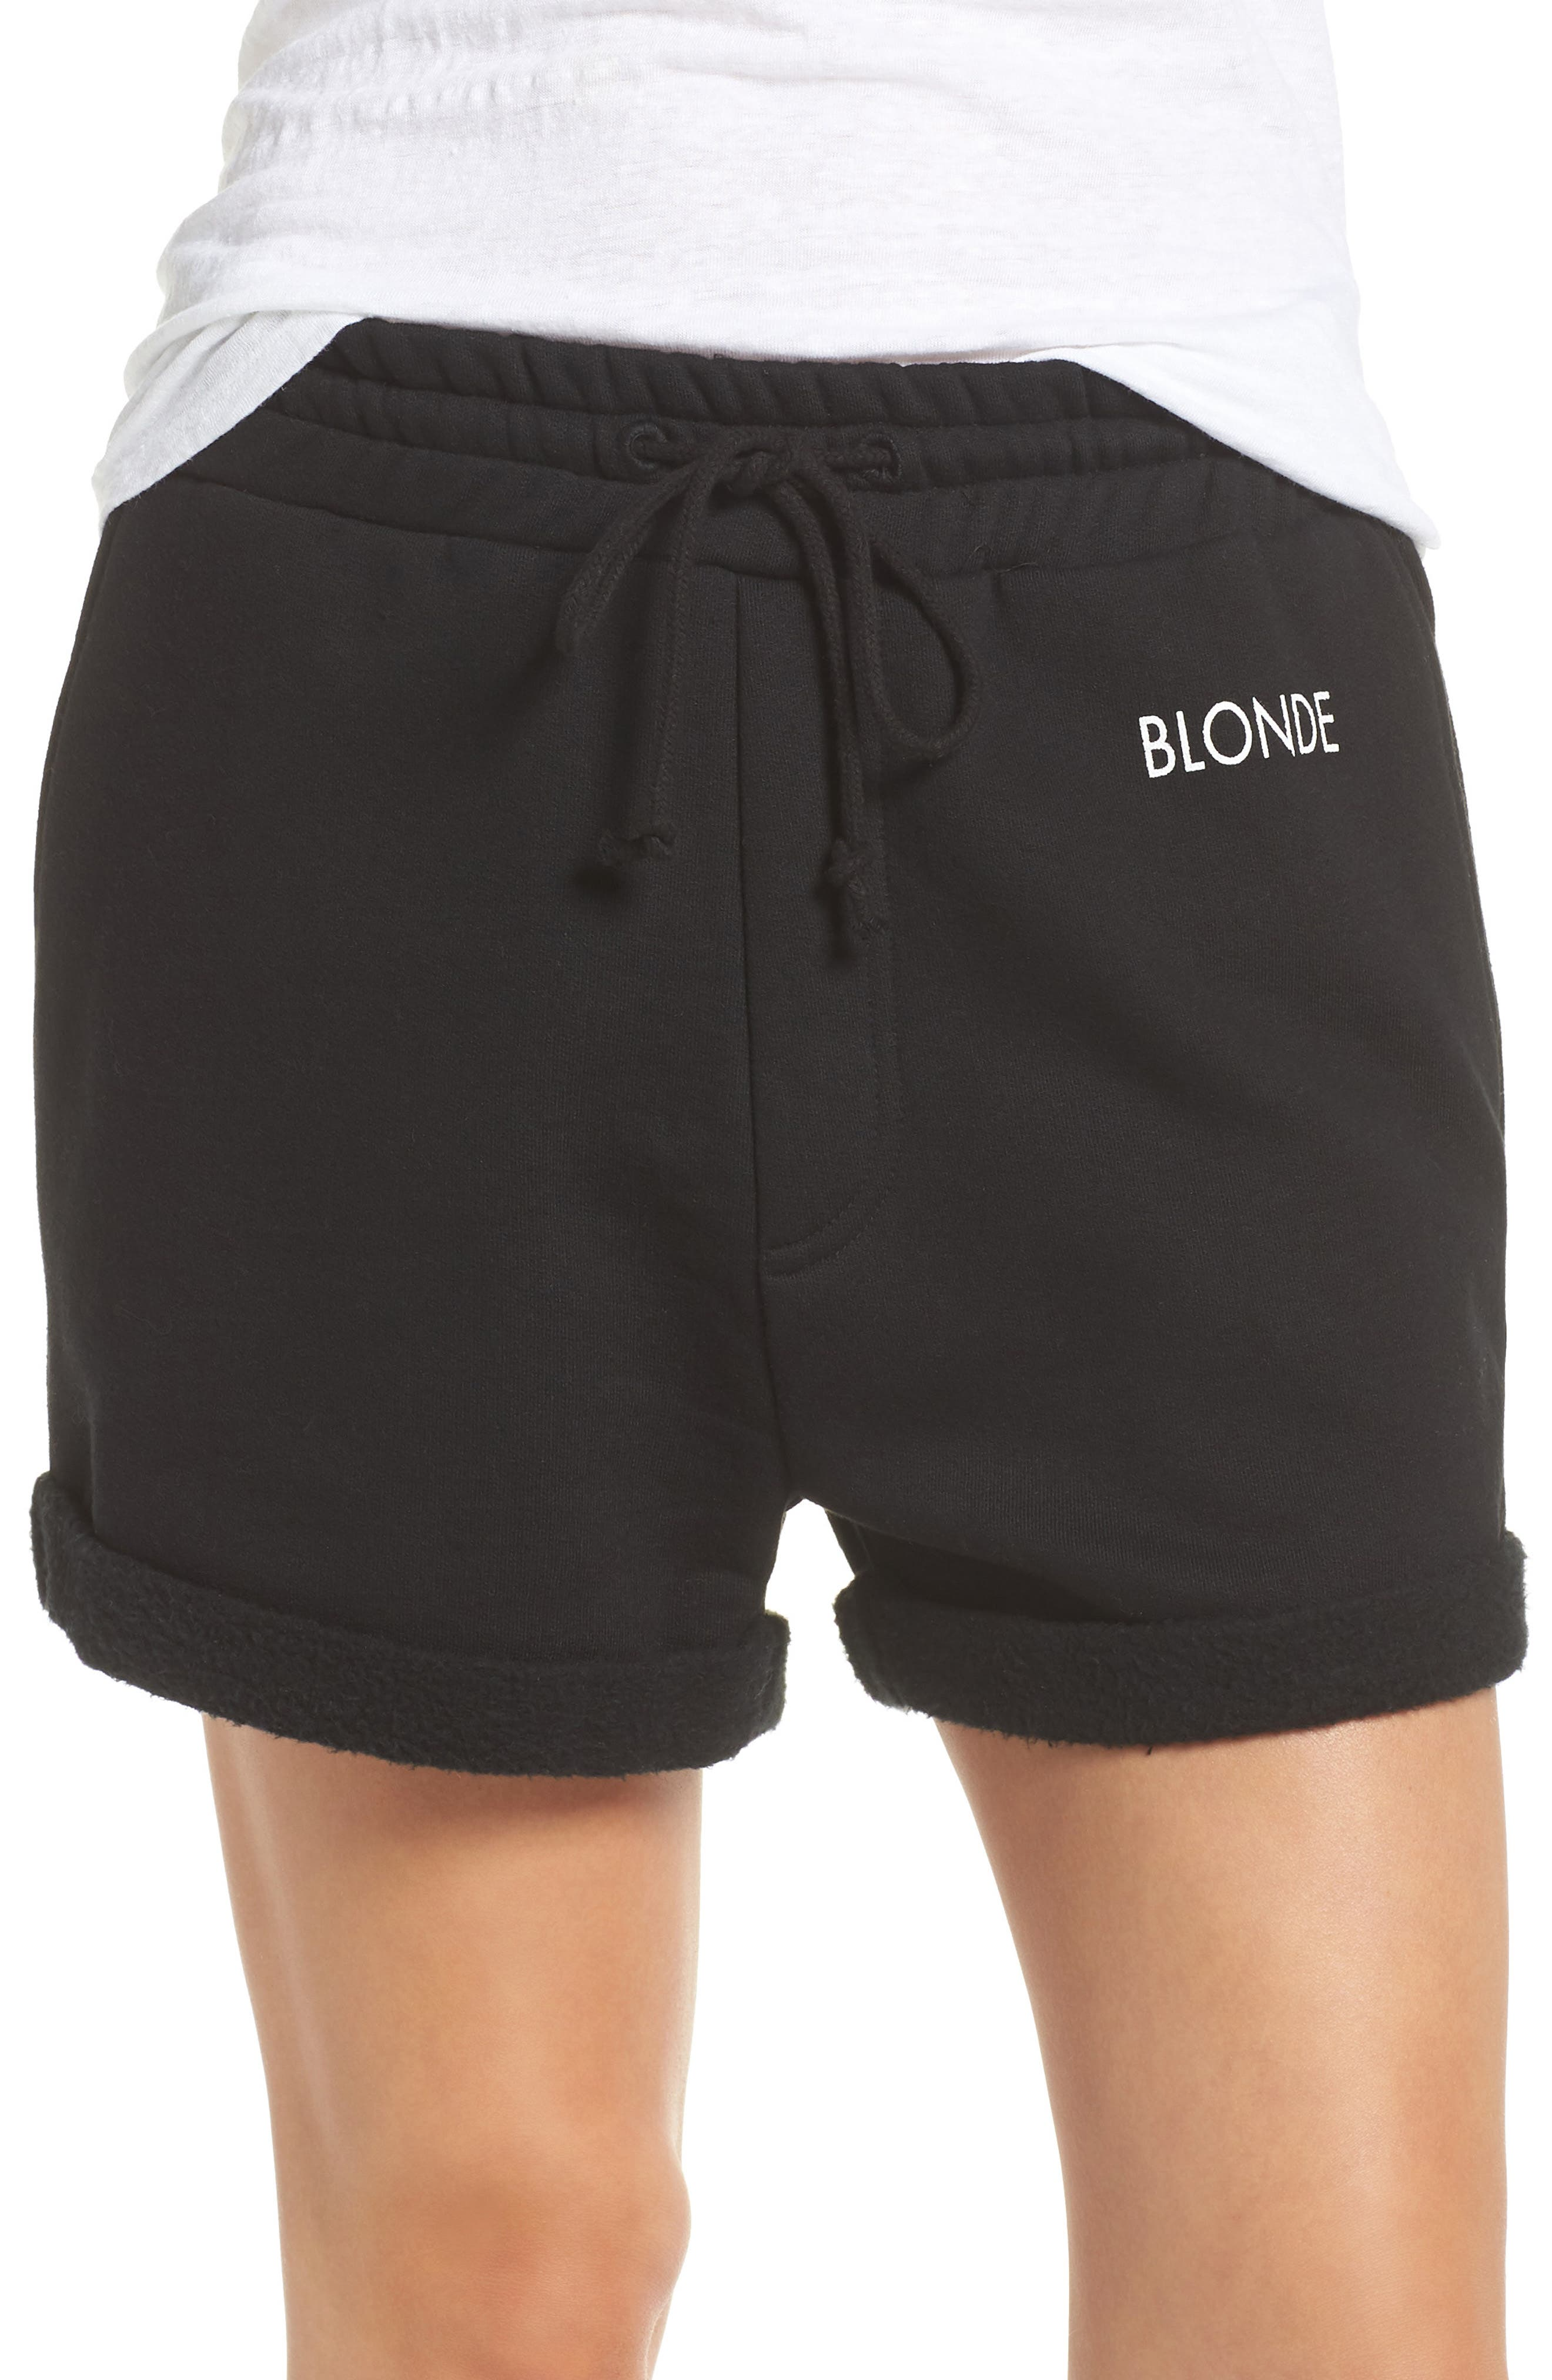 BRUNETTE the Label Blonde Lounge Shorts